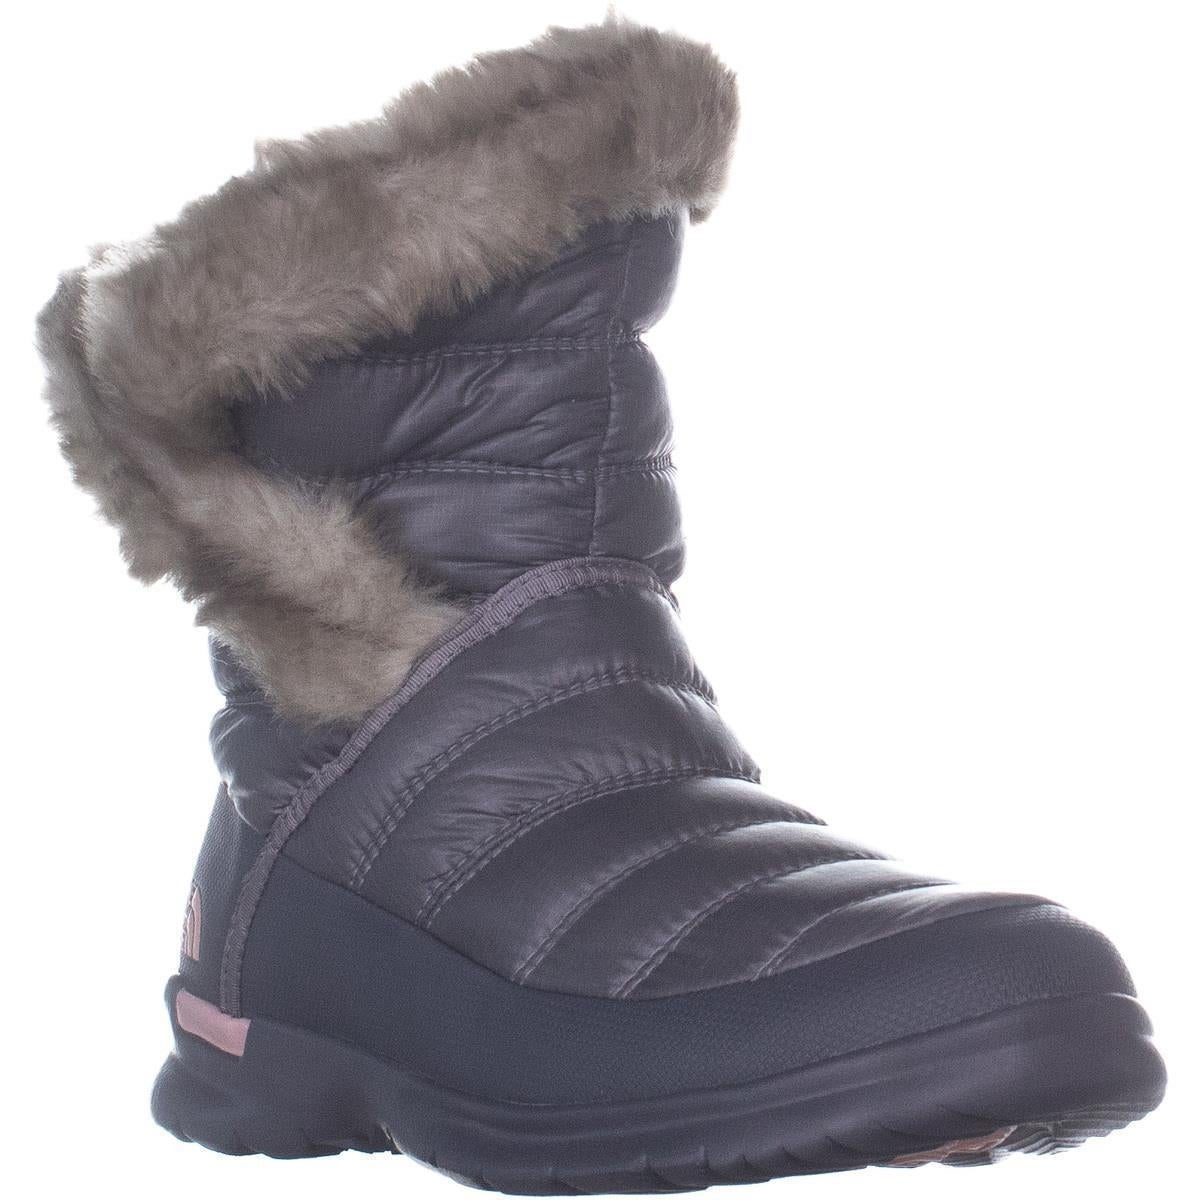 d2a71a03fd Buy Snow Women's Boots Online at Overstock | Our Best Women's Shoes ...